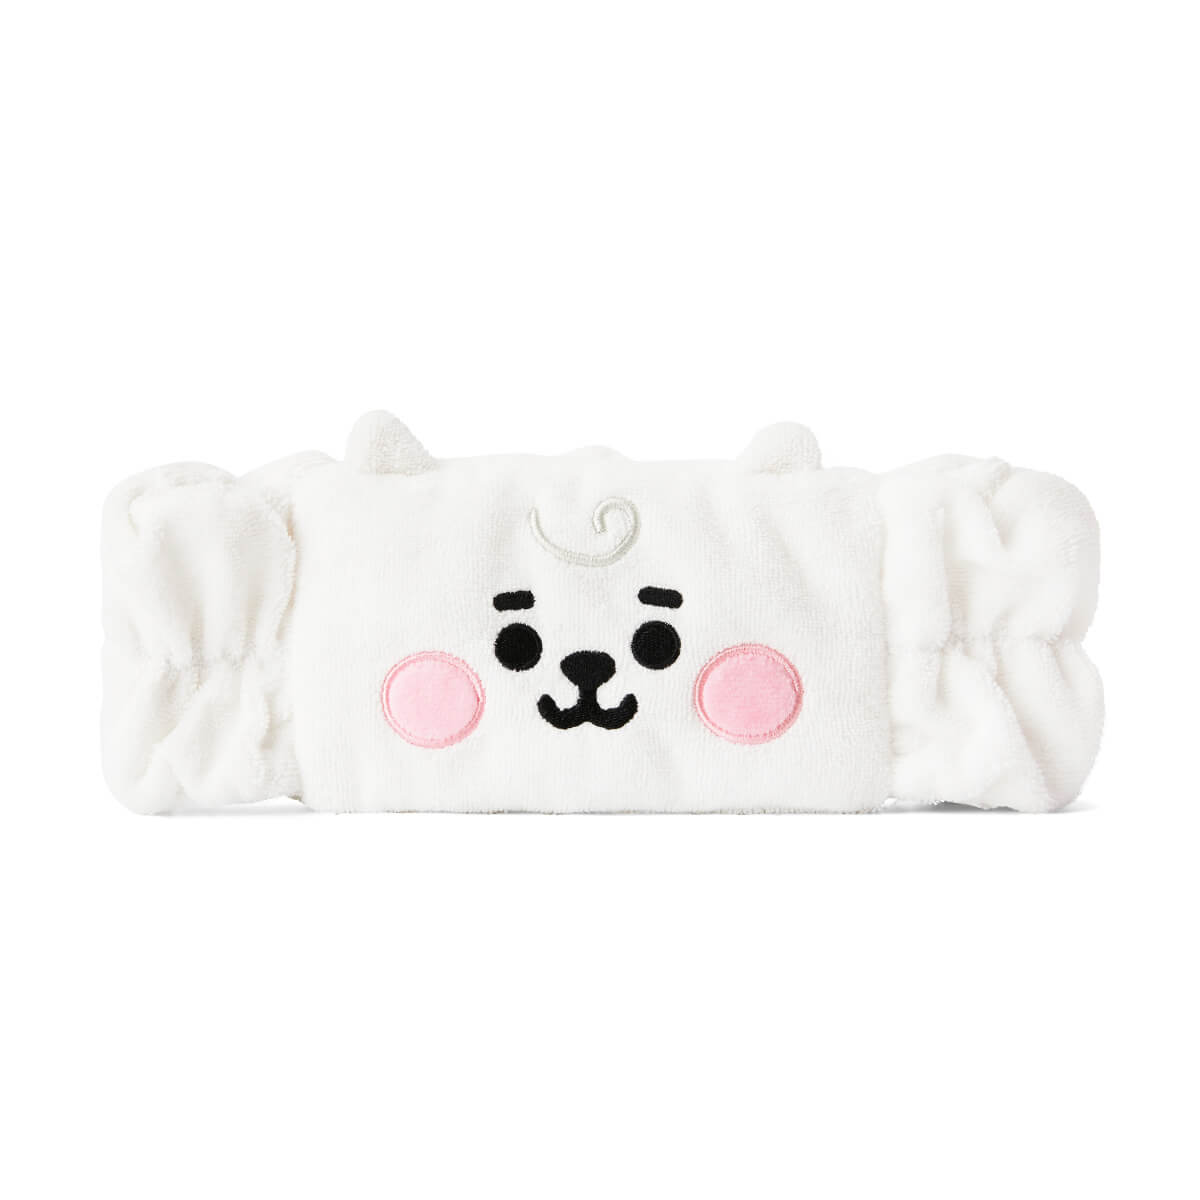 BT21 RJ BABY Microfiber Hair Band